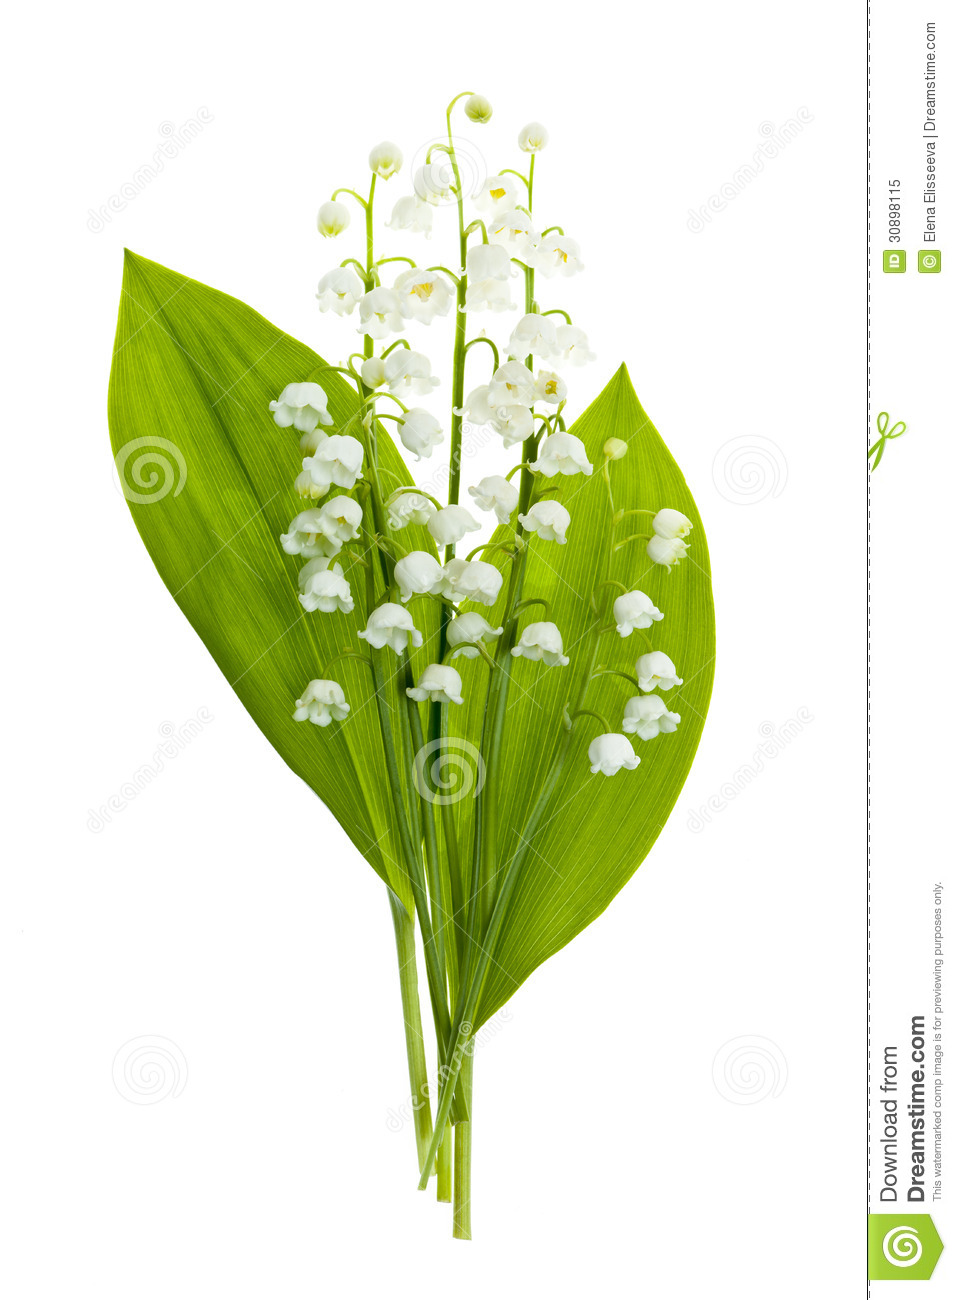 Lily of the valley flowers on white stock image image of flora lily of the valley flowers on white izmirmasajfo